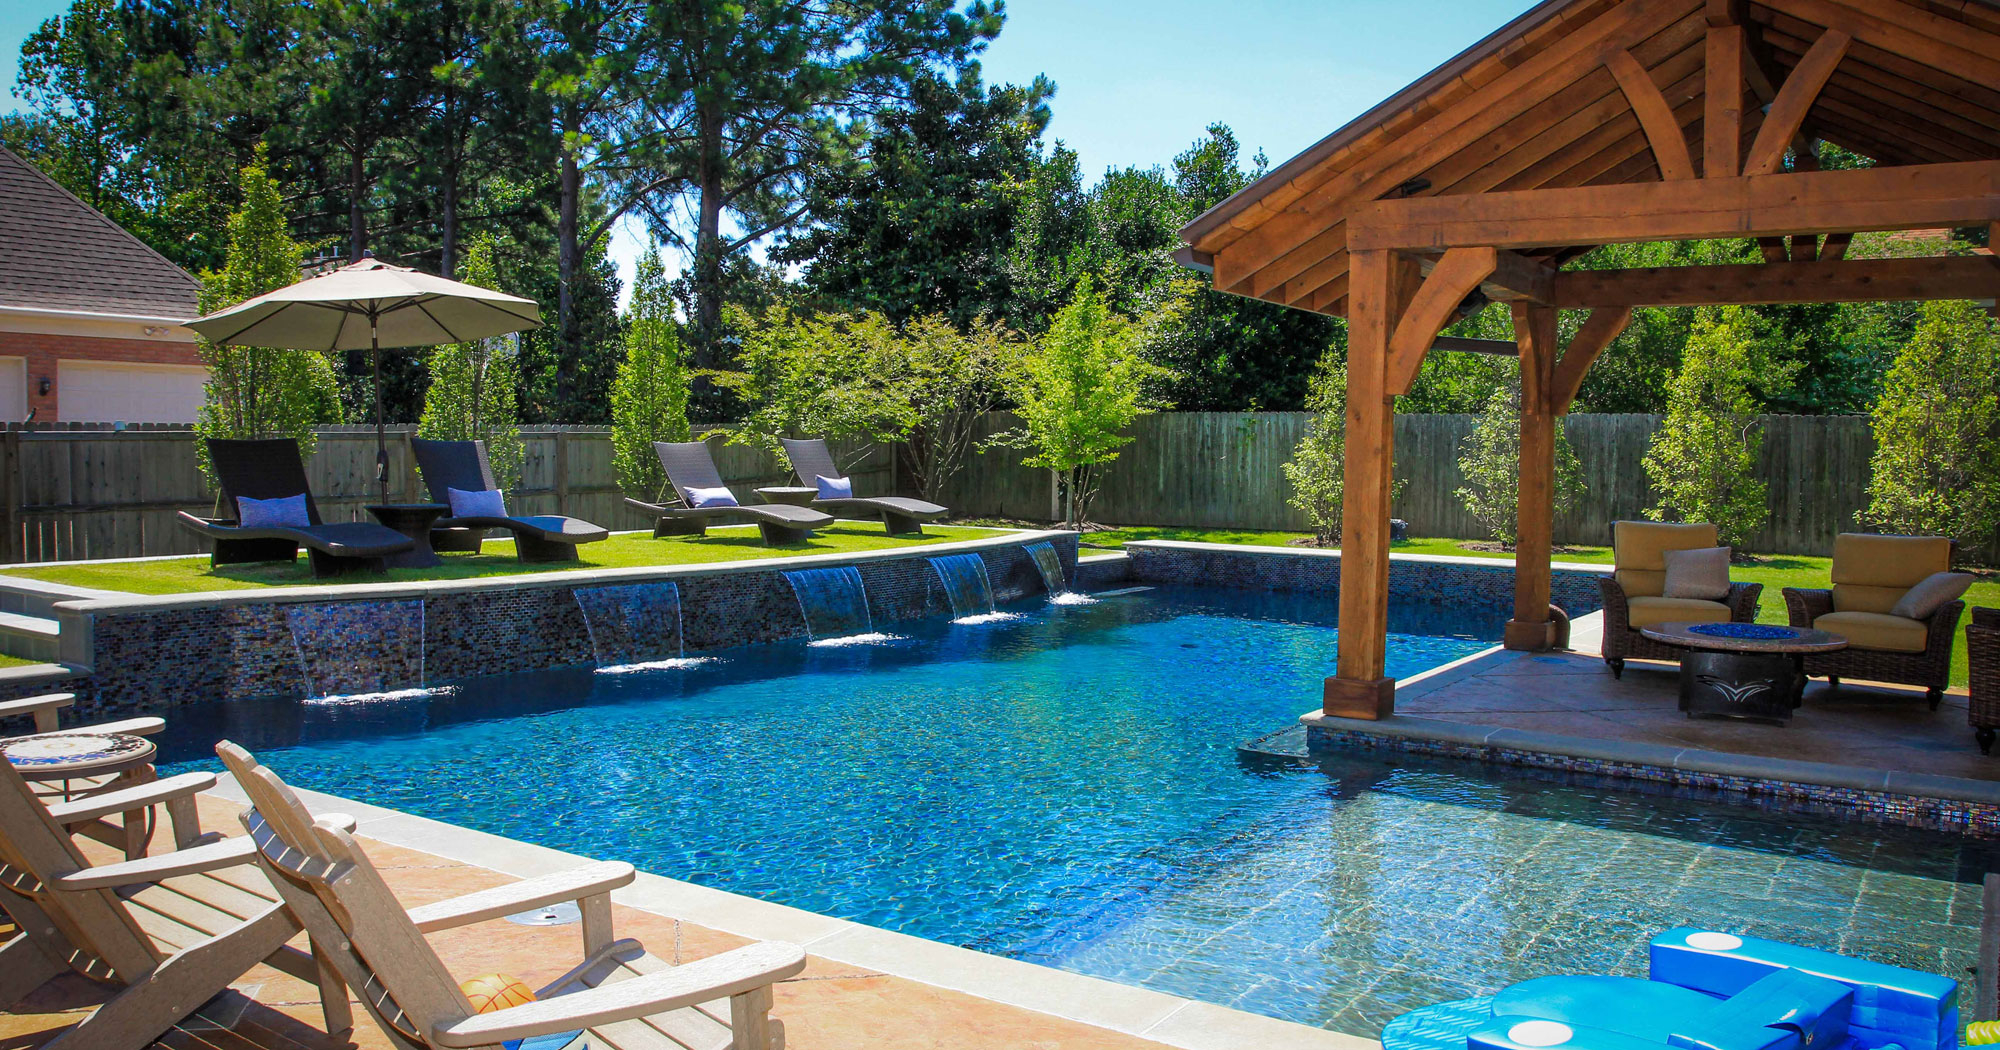 Backyard Living Trends For 2018 Cincinnati Pool And Patio intended for Backyard Pool Landscaping Ideas